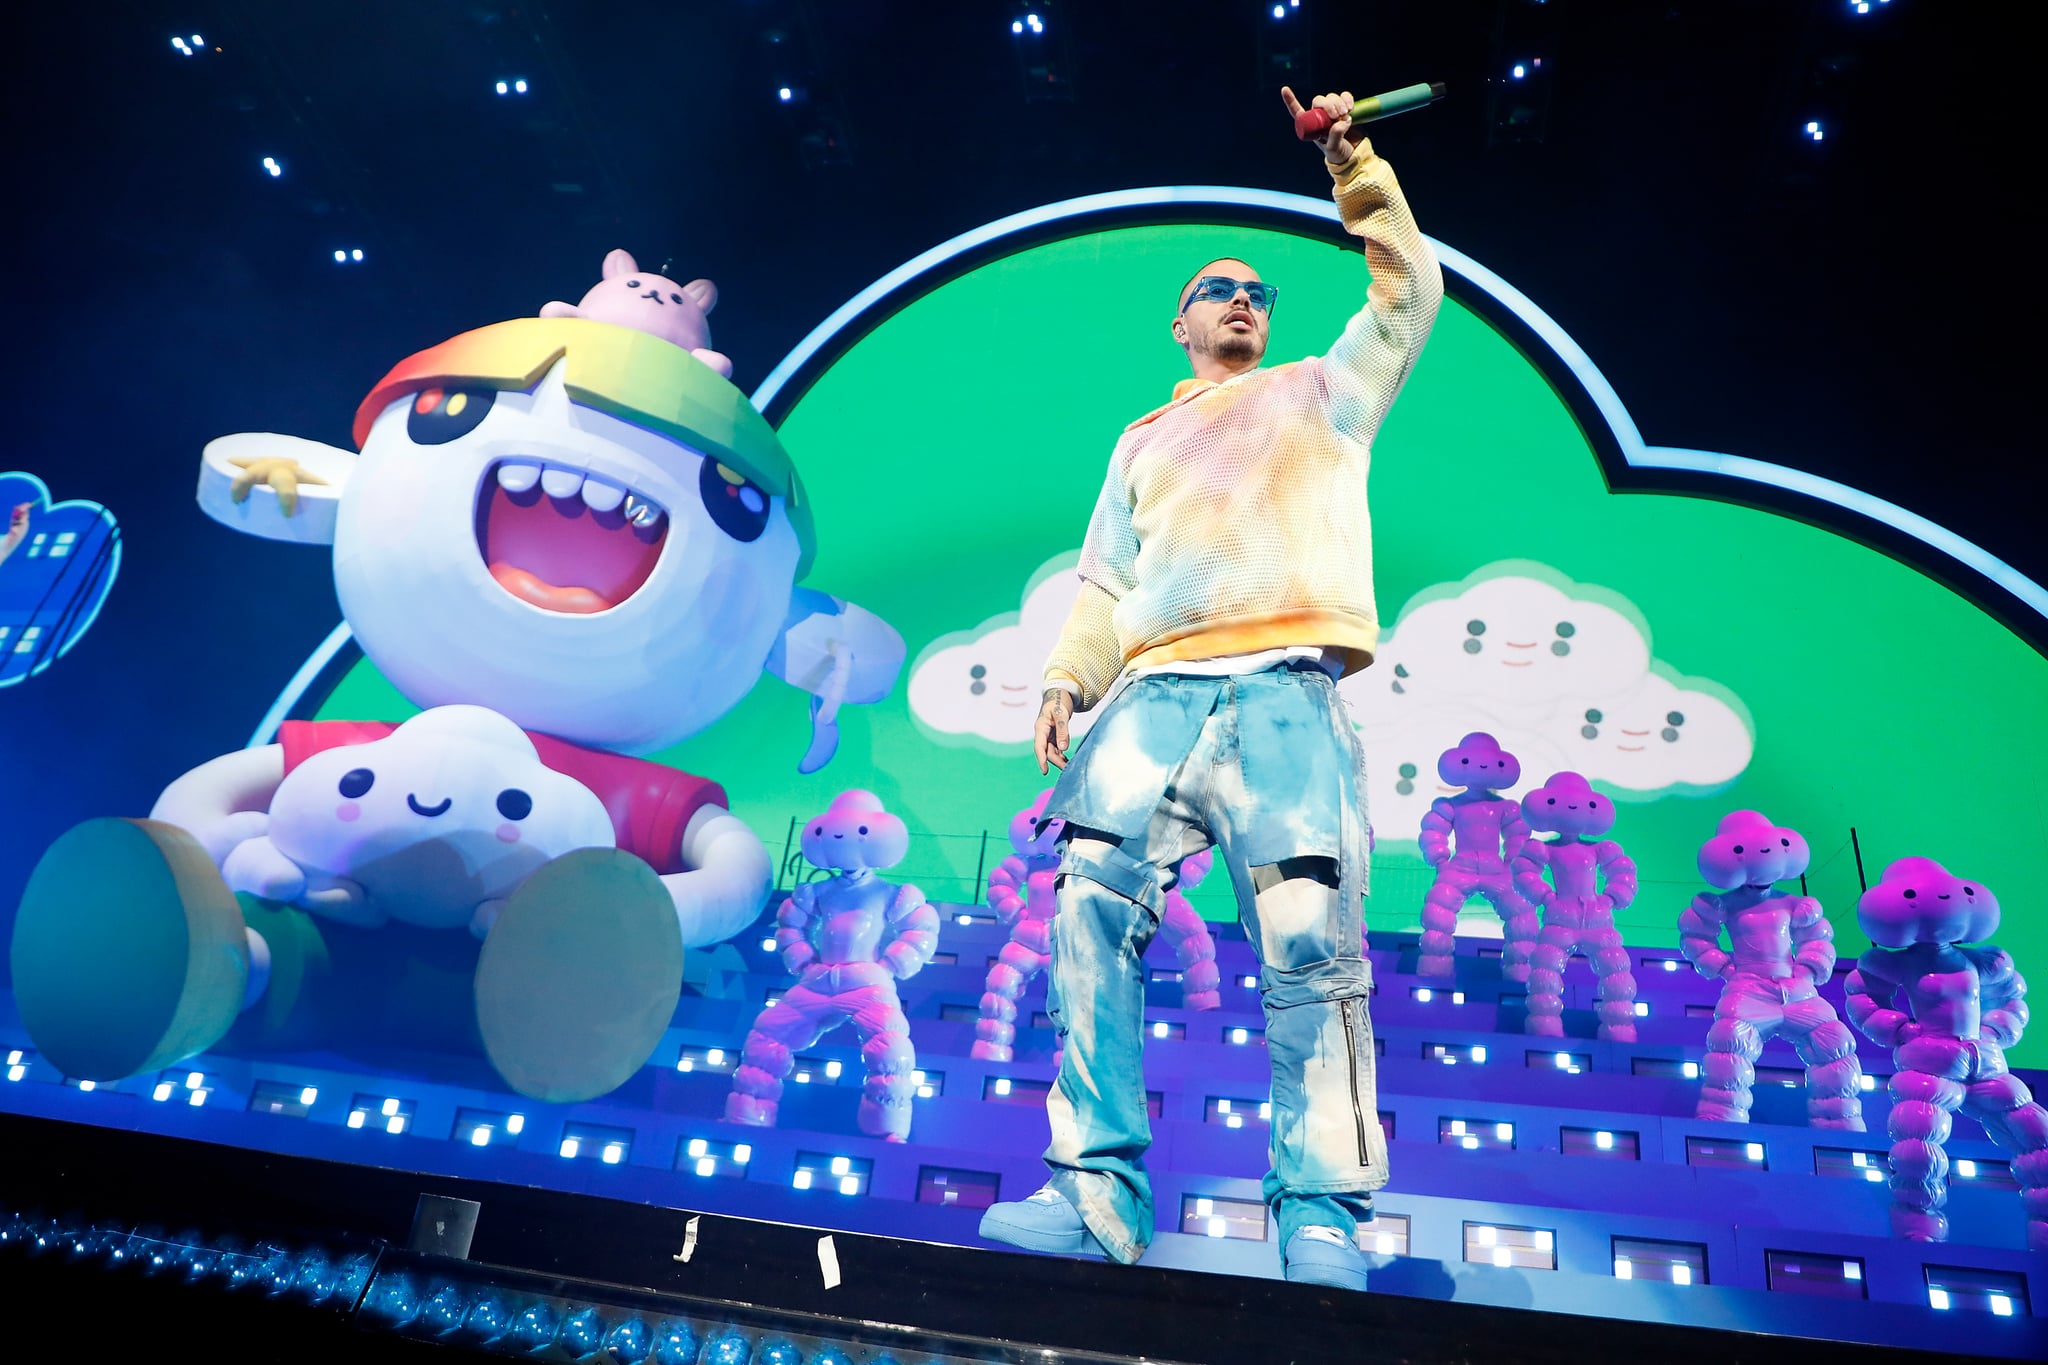 NEW YORK, NEW YORK - SEPTEMBER 29: J Balvin performs at Madison Square Garden on September 29, 2019 in New York City. (Photo by Taylor Hill/Getty Images)